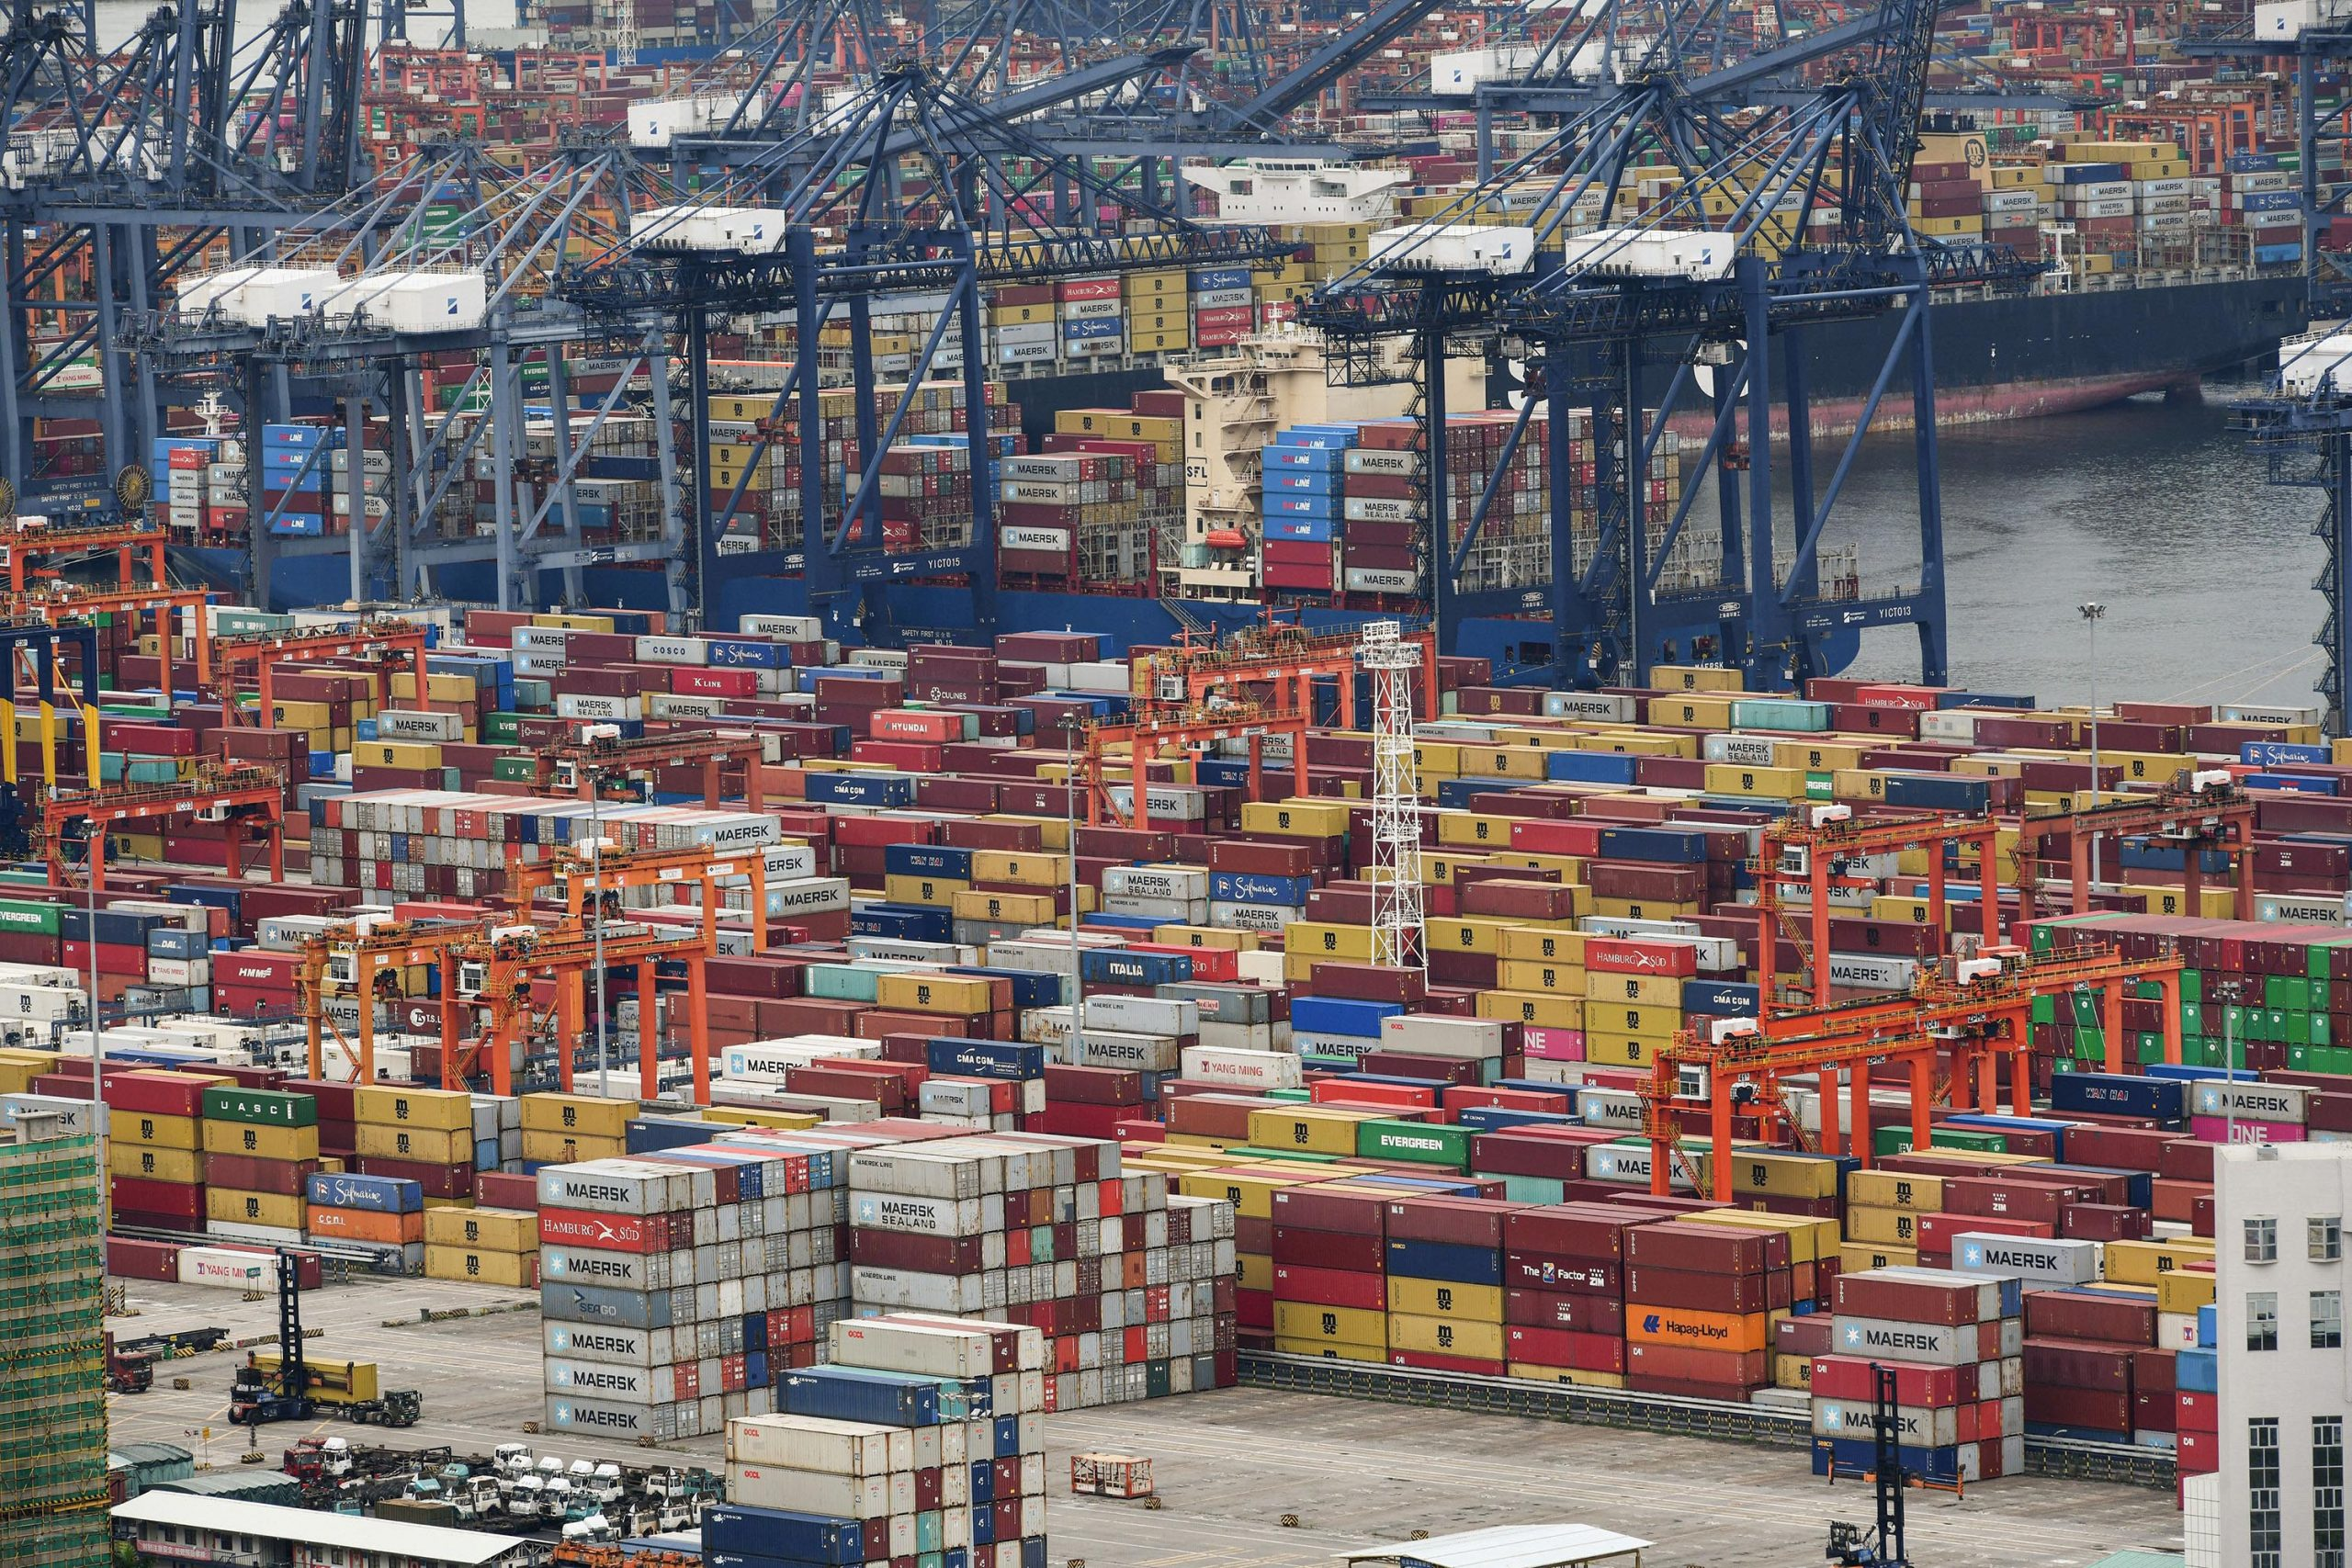 Biden announced measures to prevent a supply chain crisis